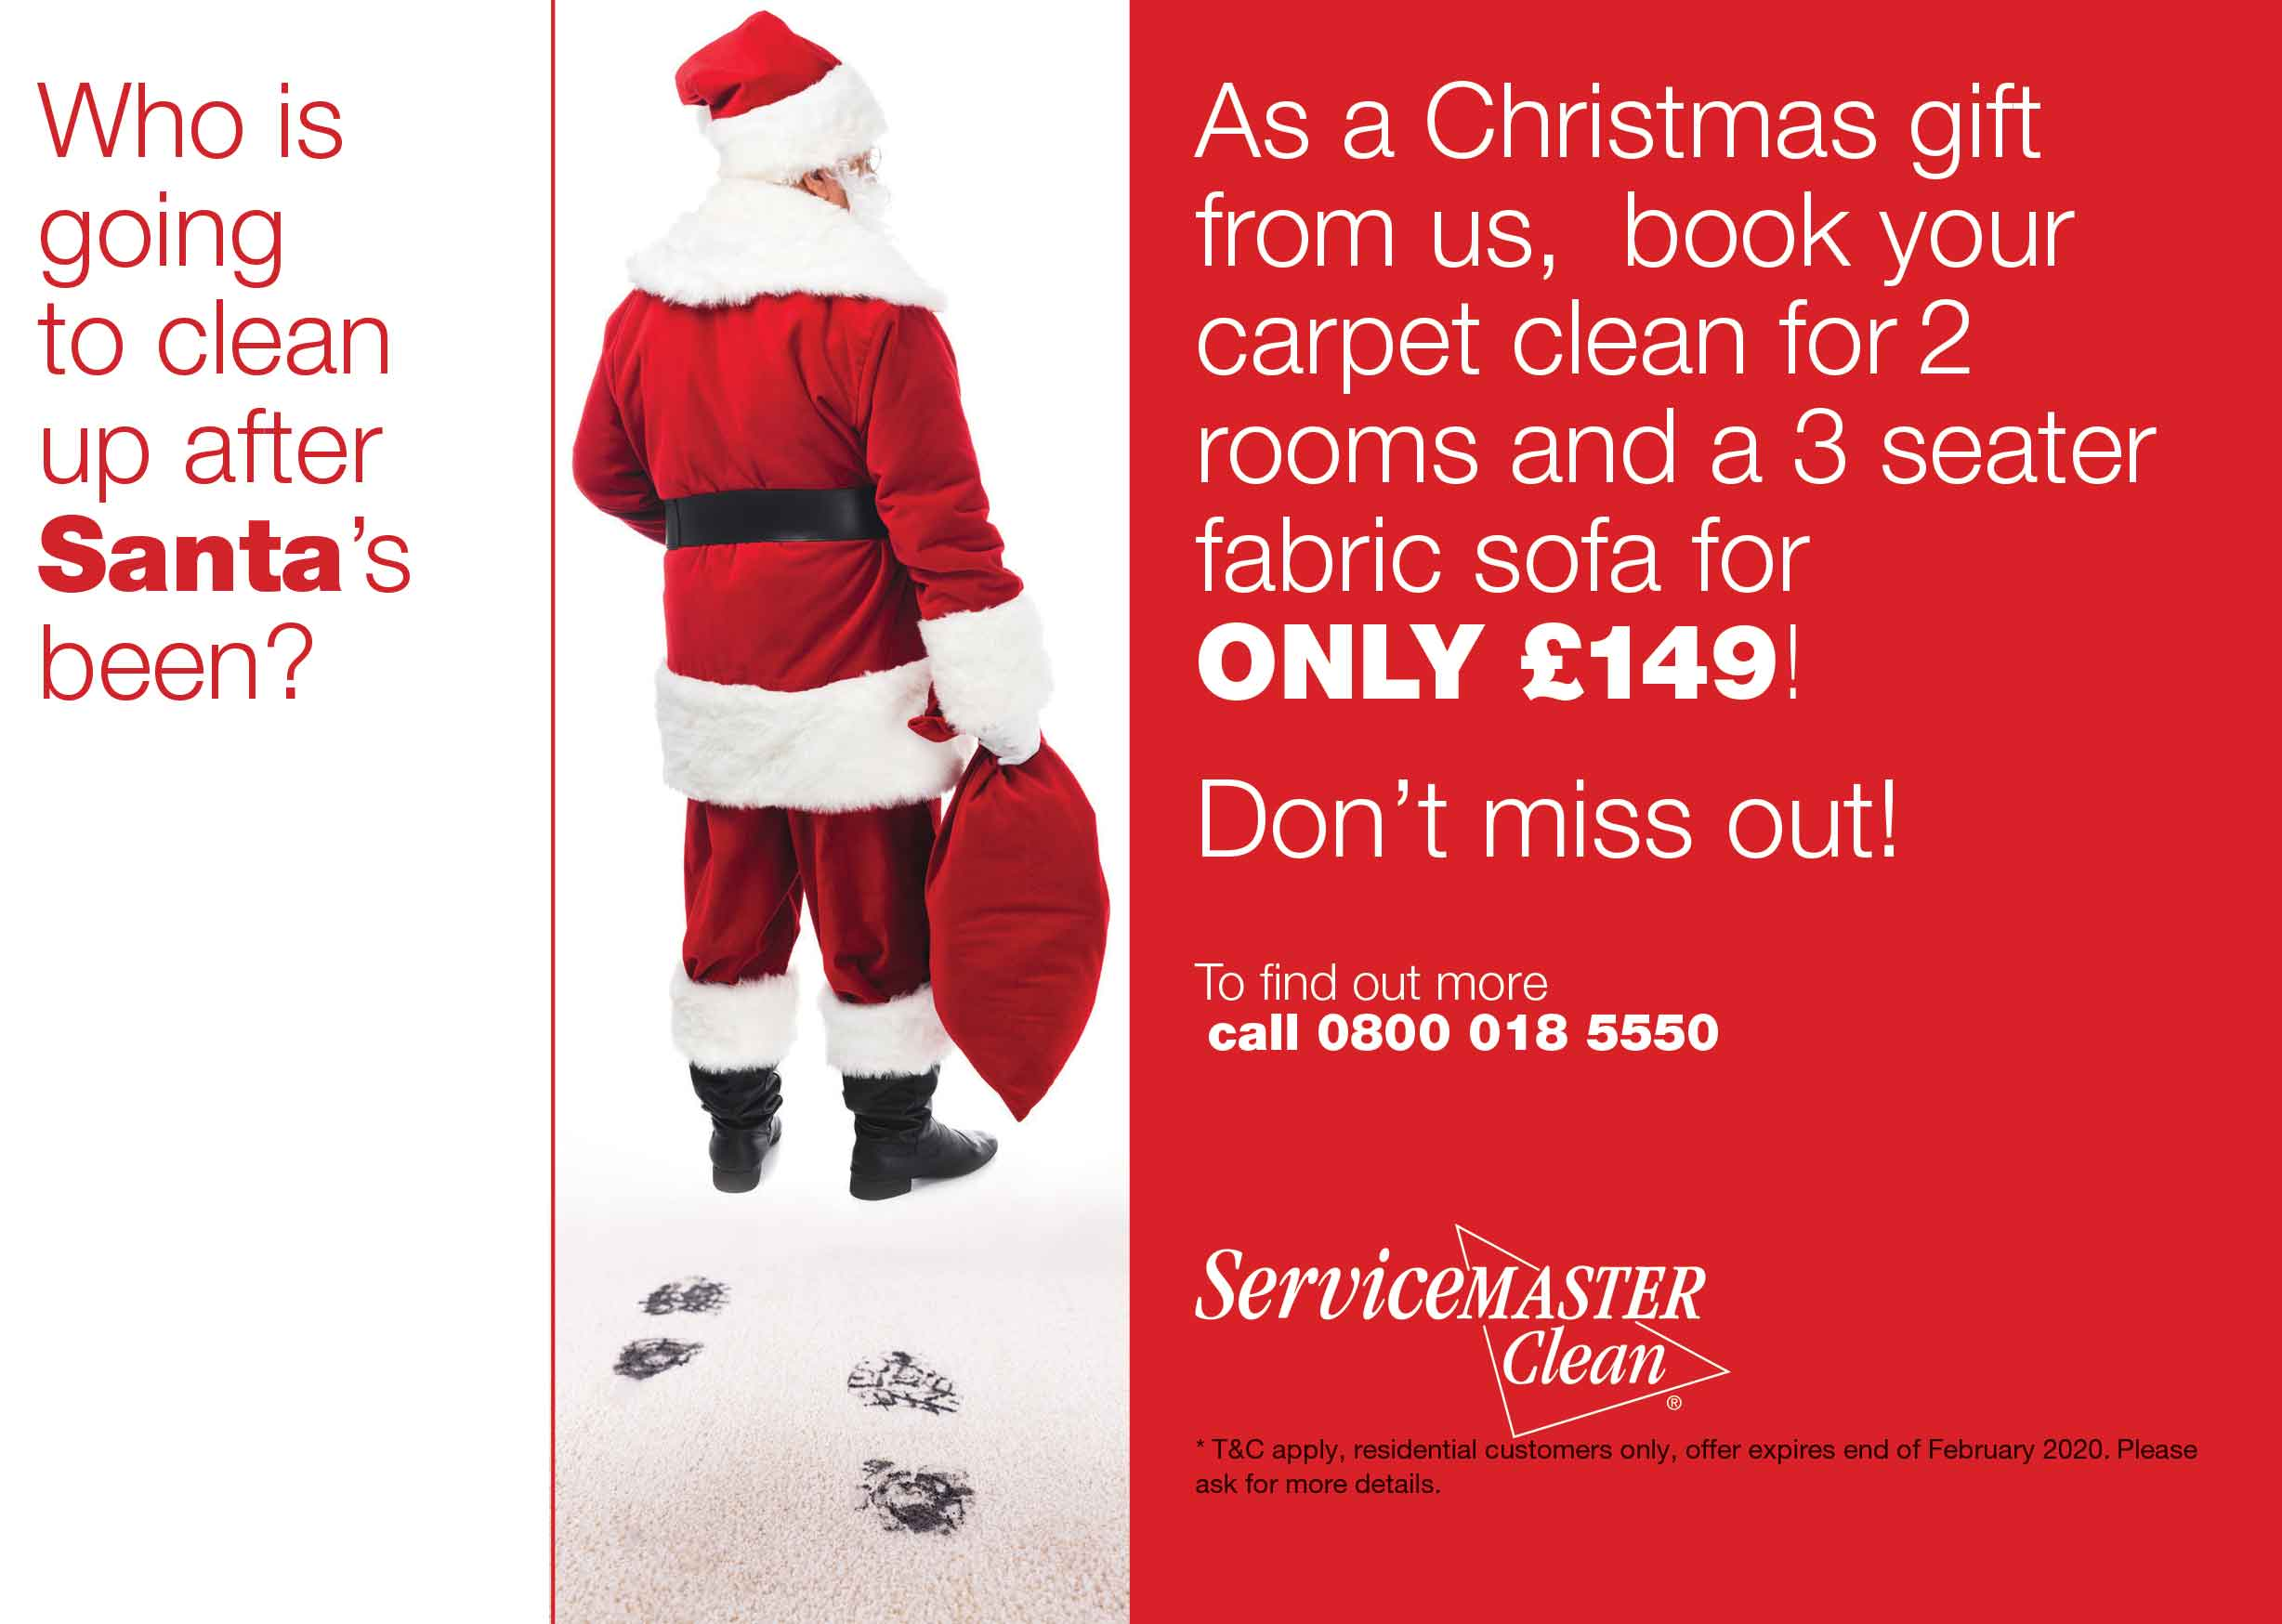 Christmas Carpet Upholstery Cleaning Offer